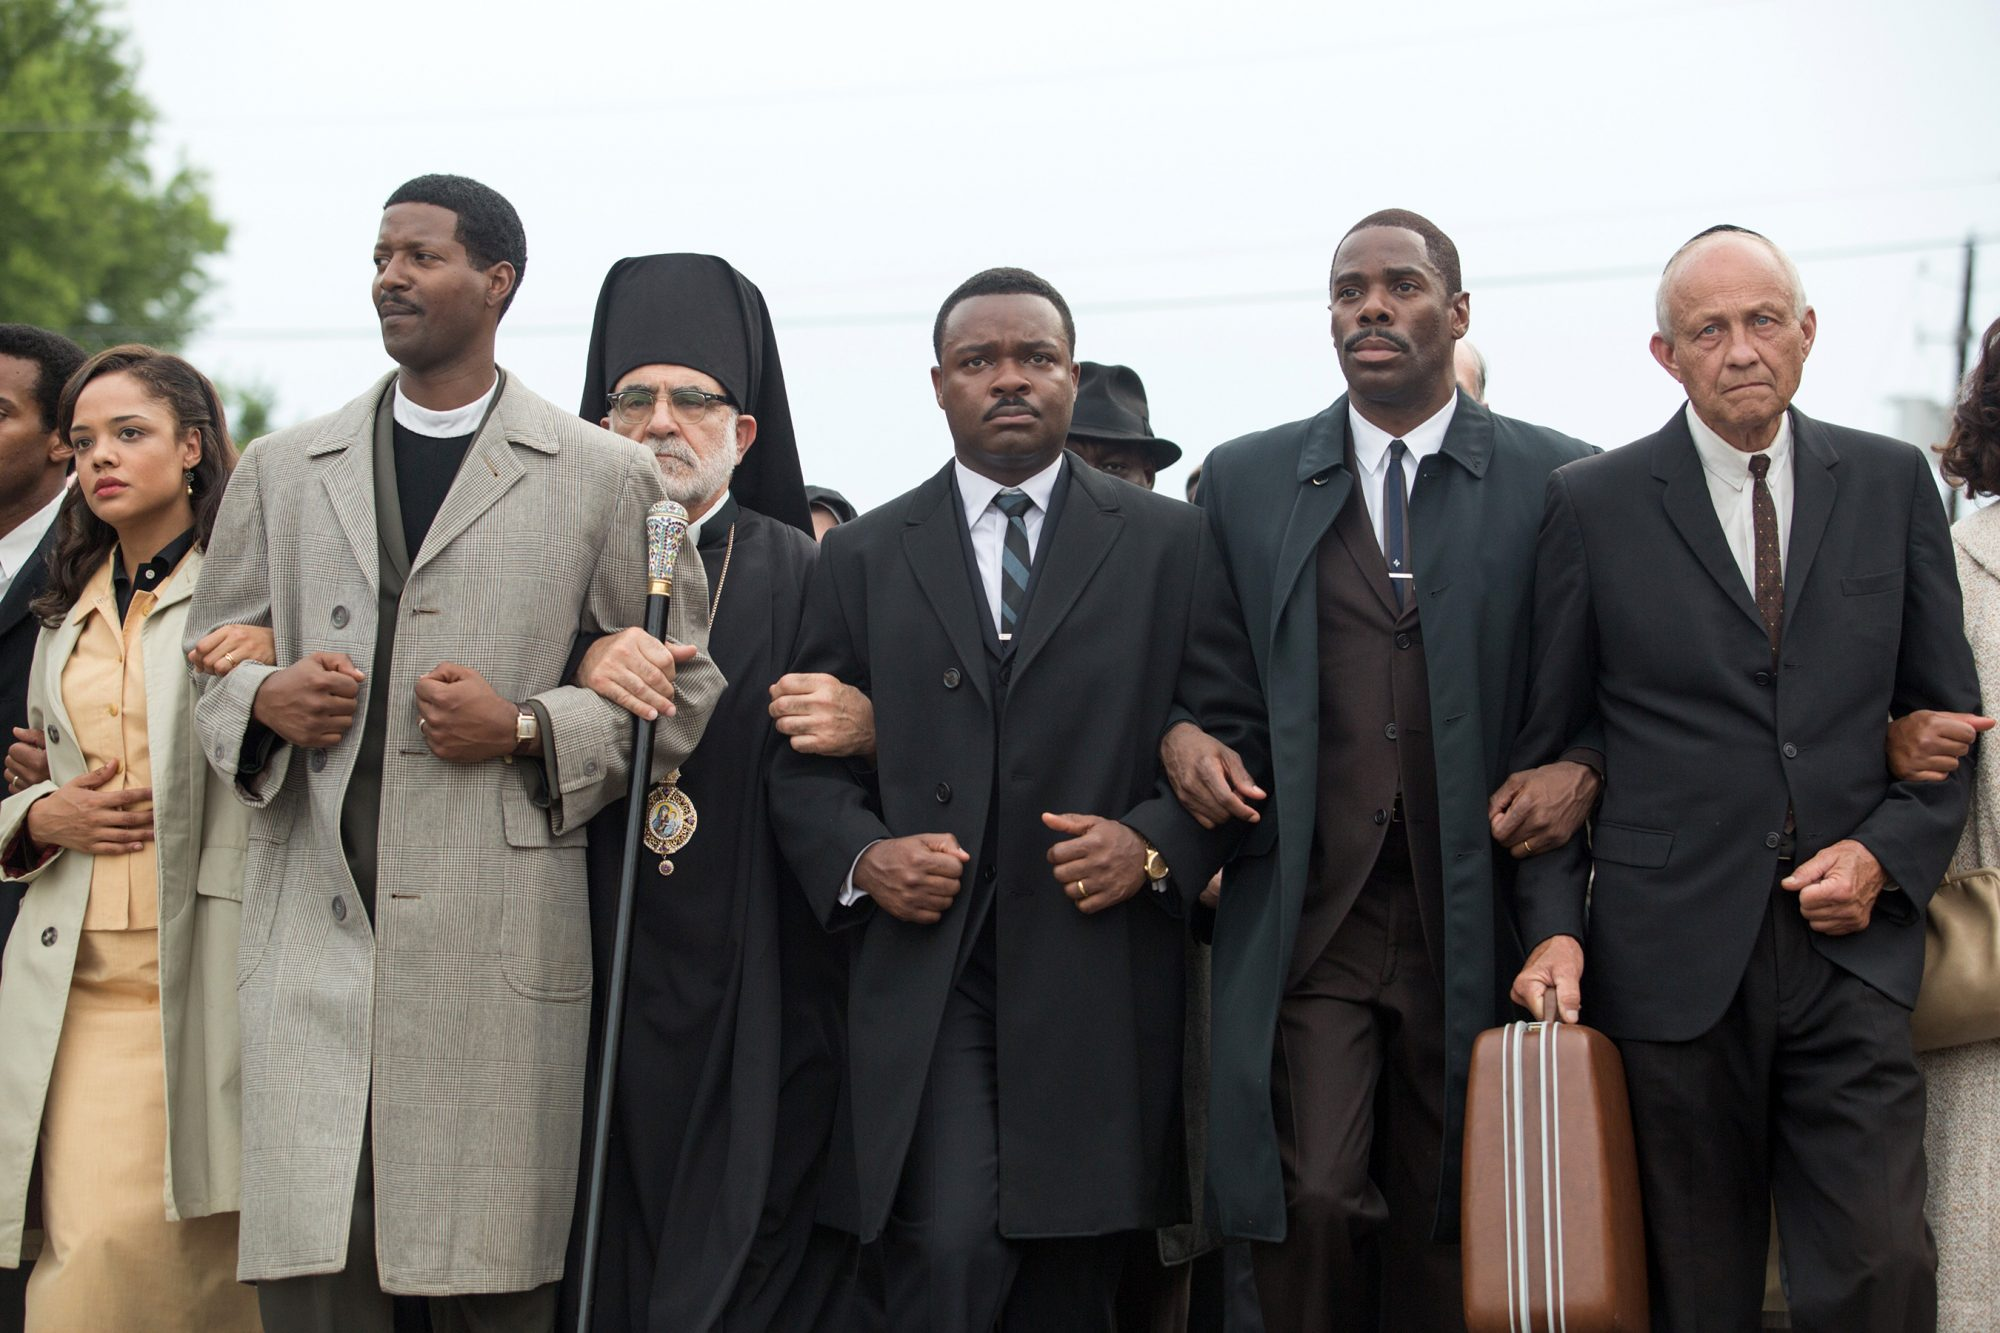 Ava DuVernay's Selma available to stream for free | EW.com